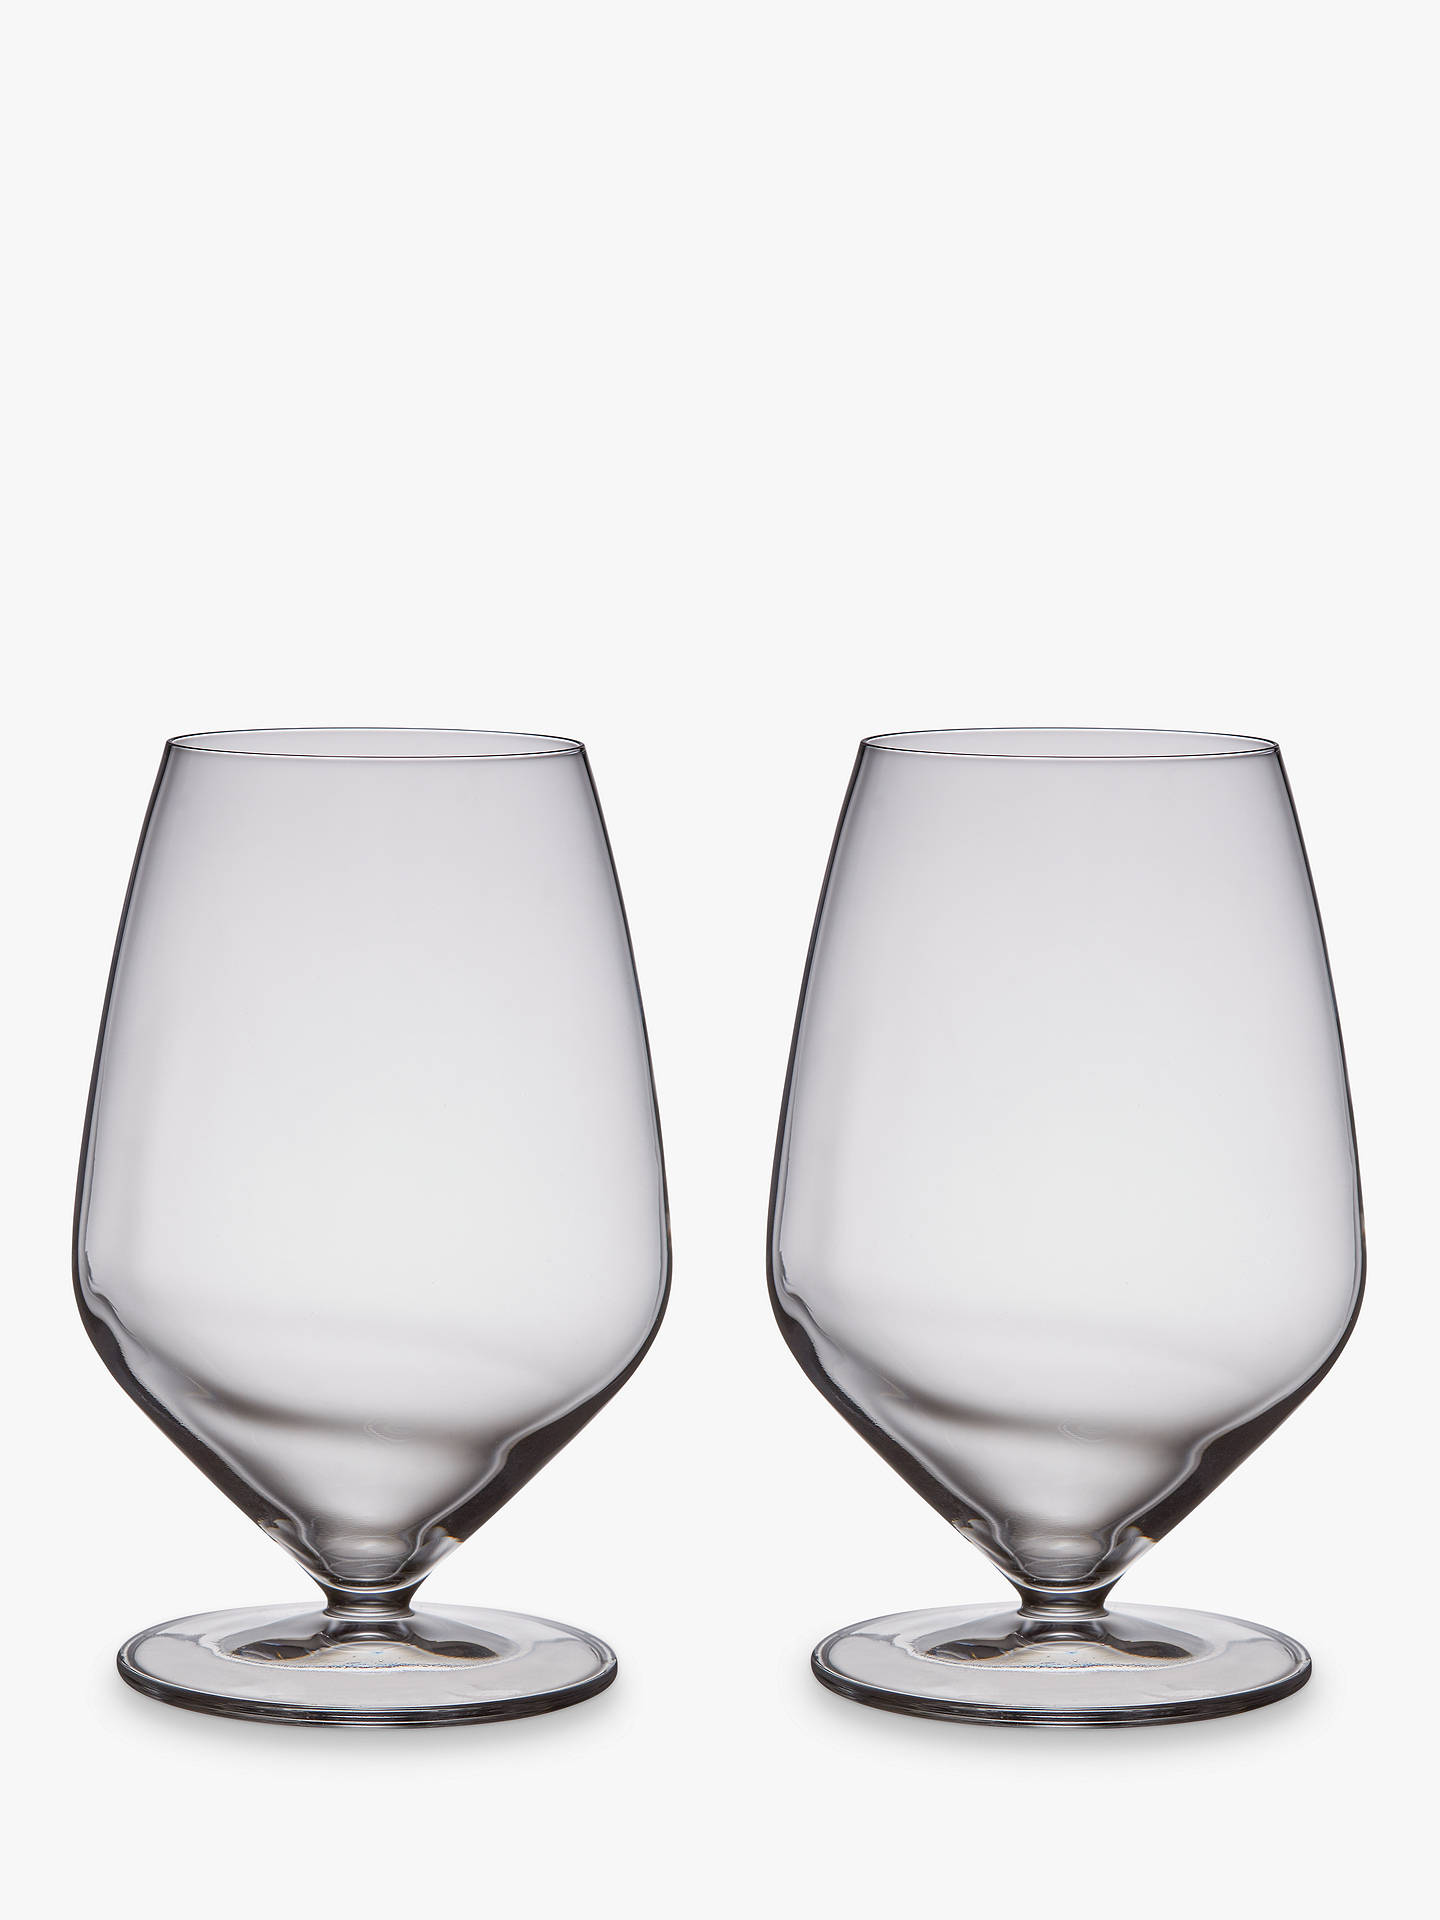 BuyJohn Lewis & Partners Connoisseur Beer Glasses, Clear, 700ml, Set of 2 Online at johnlewis.com